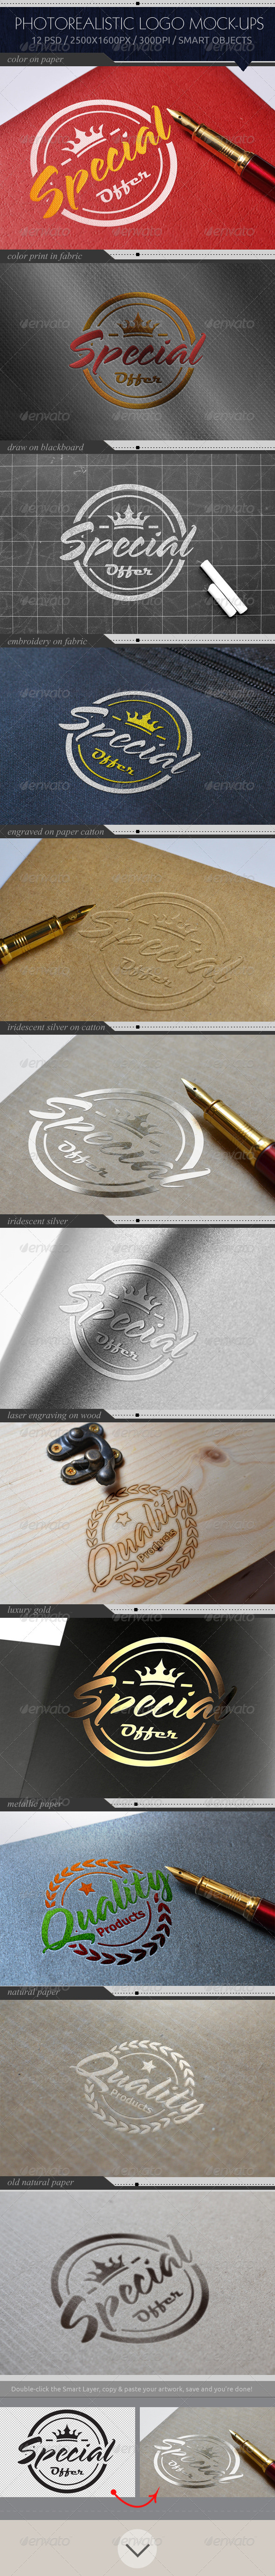 GraphicRiver Photorealistic Logo Mock-Ups 7941892